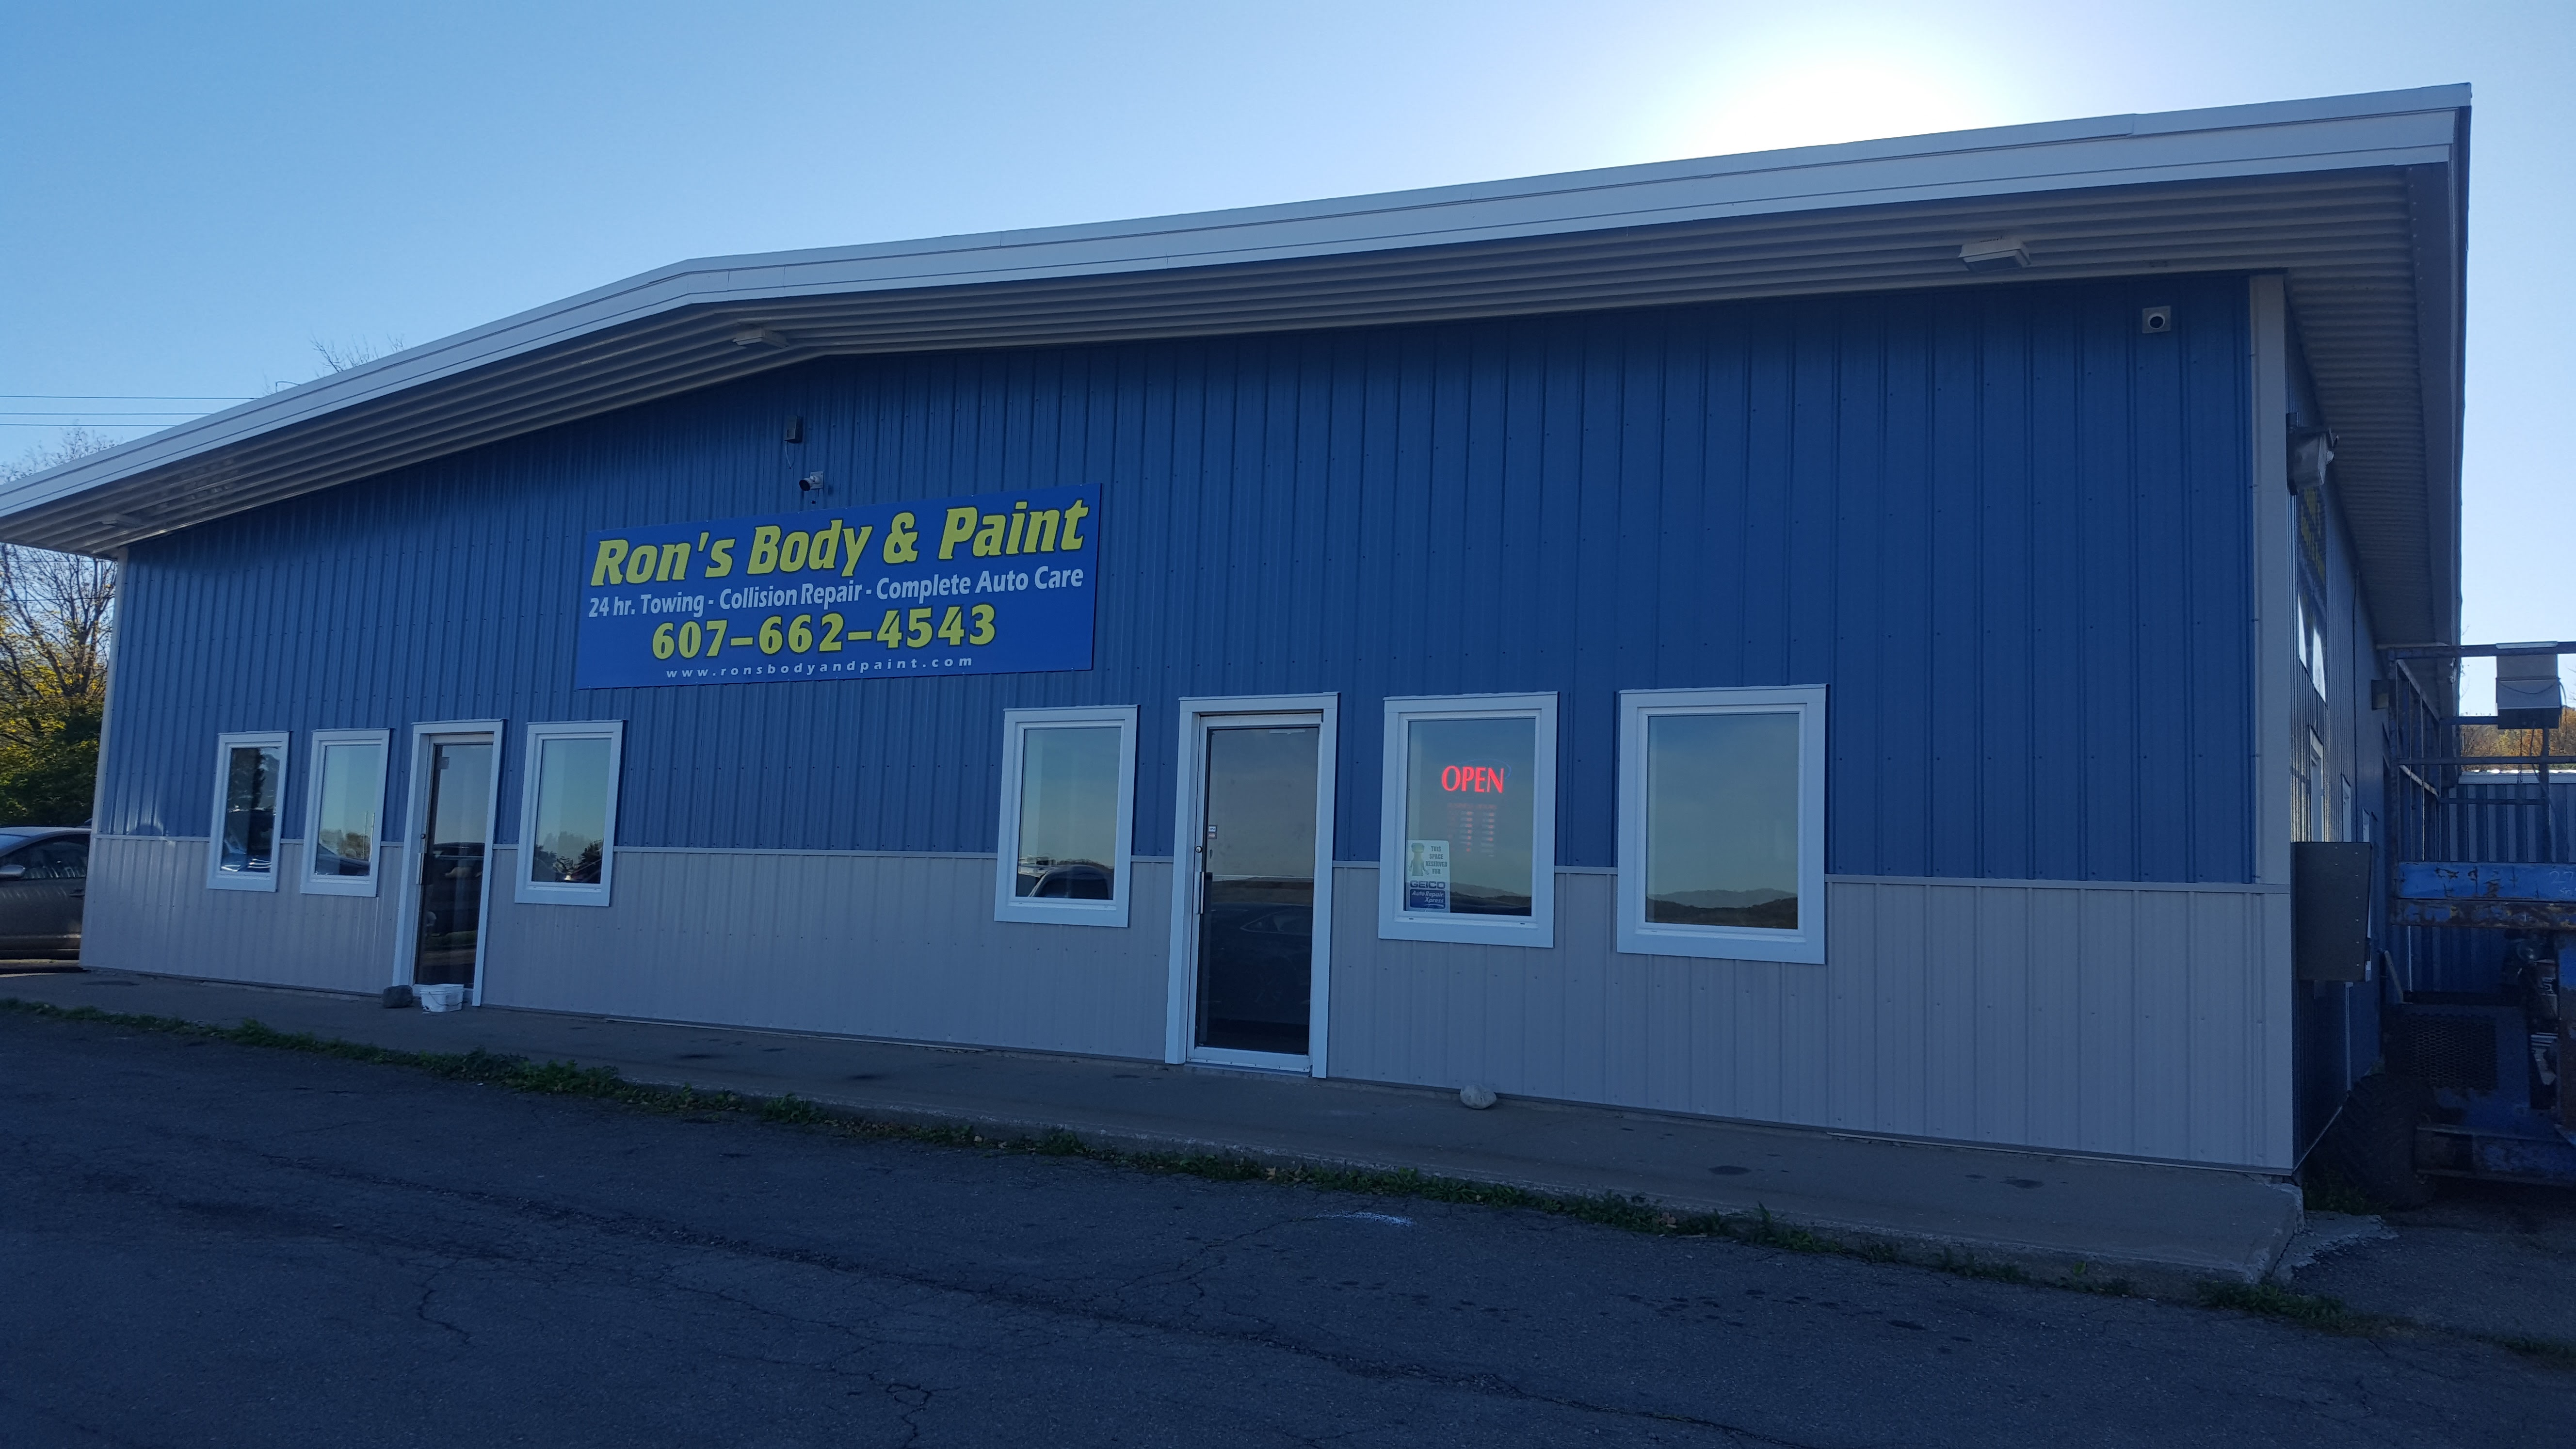 Rons body paint 362 state route 13 cortland ny 13045 yp solutioingenieria Image collections